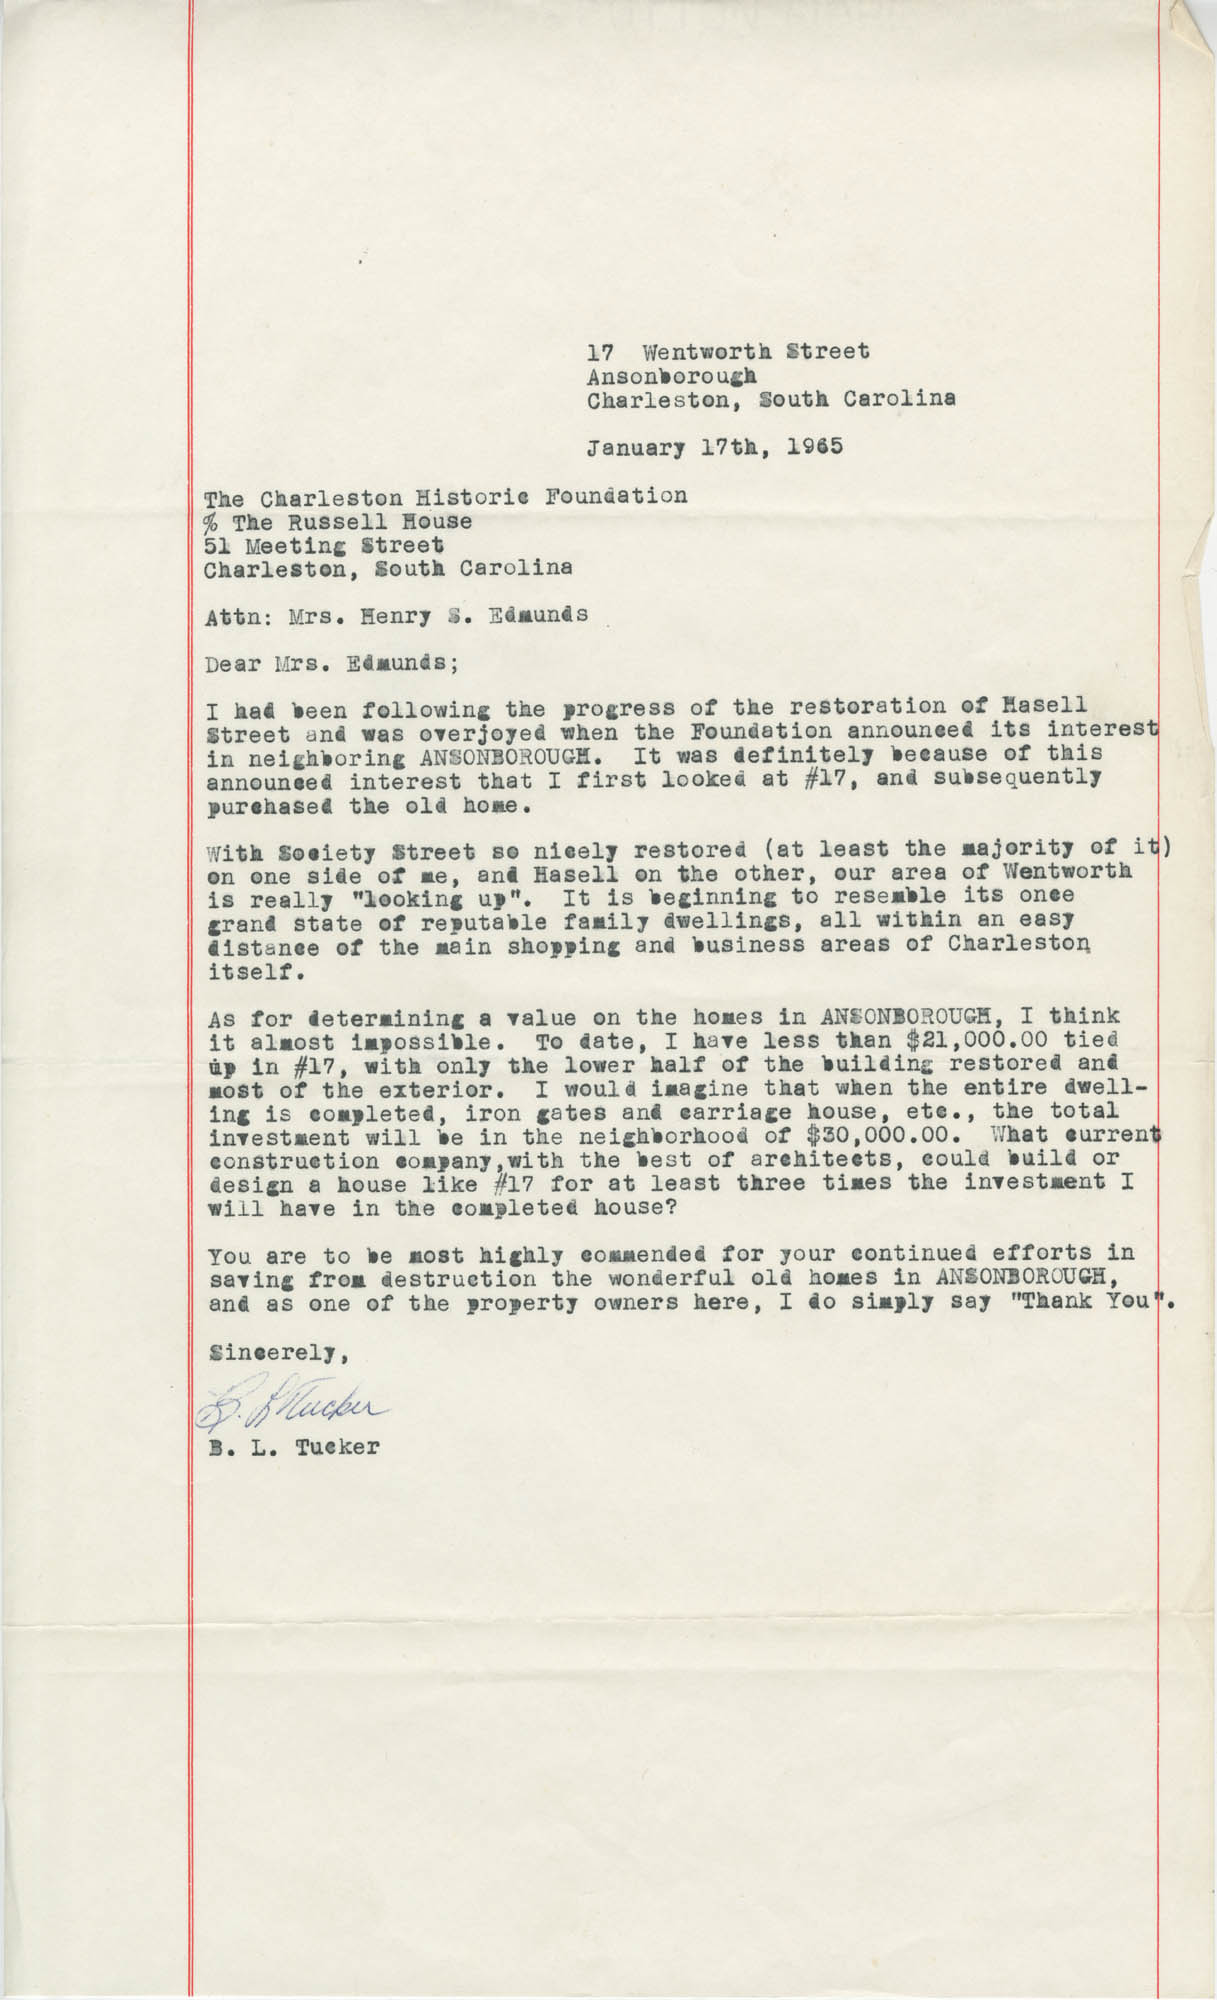 Letter from B. L. Tucker to Mrs. Henry S. Edmunds